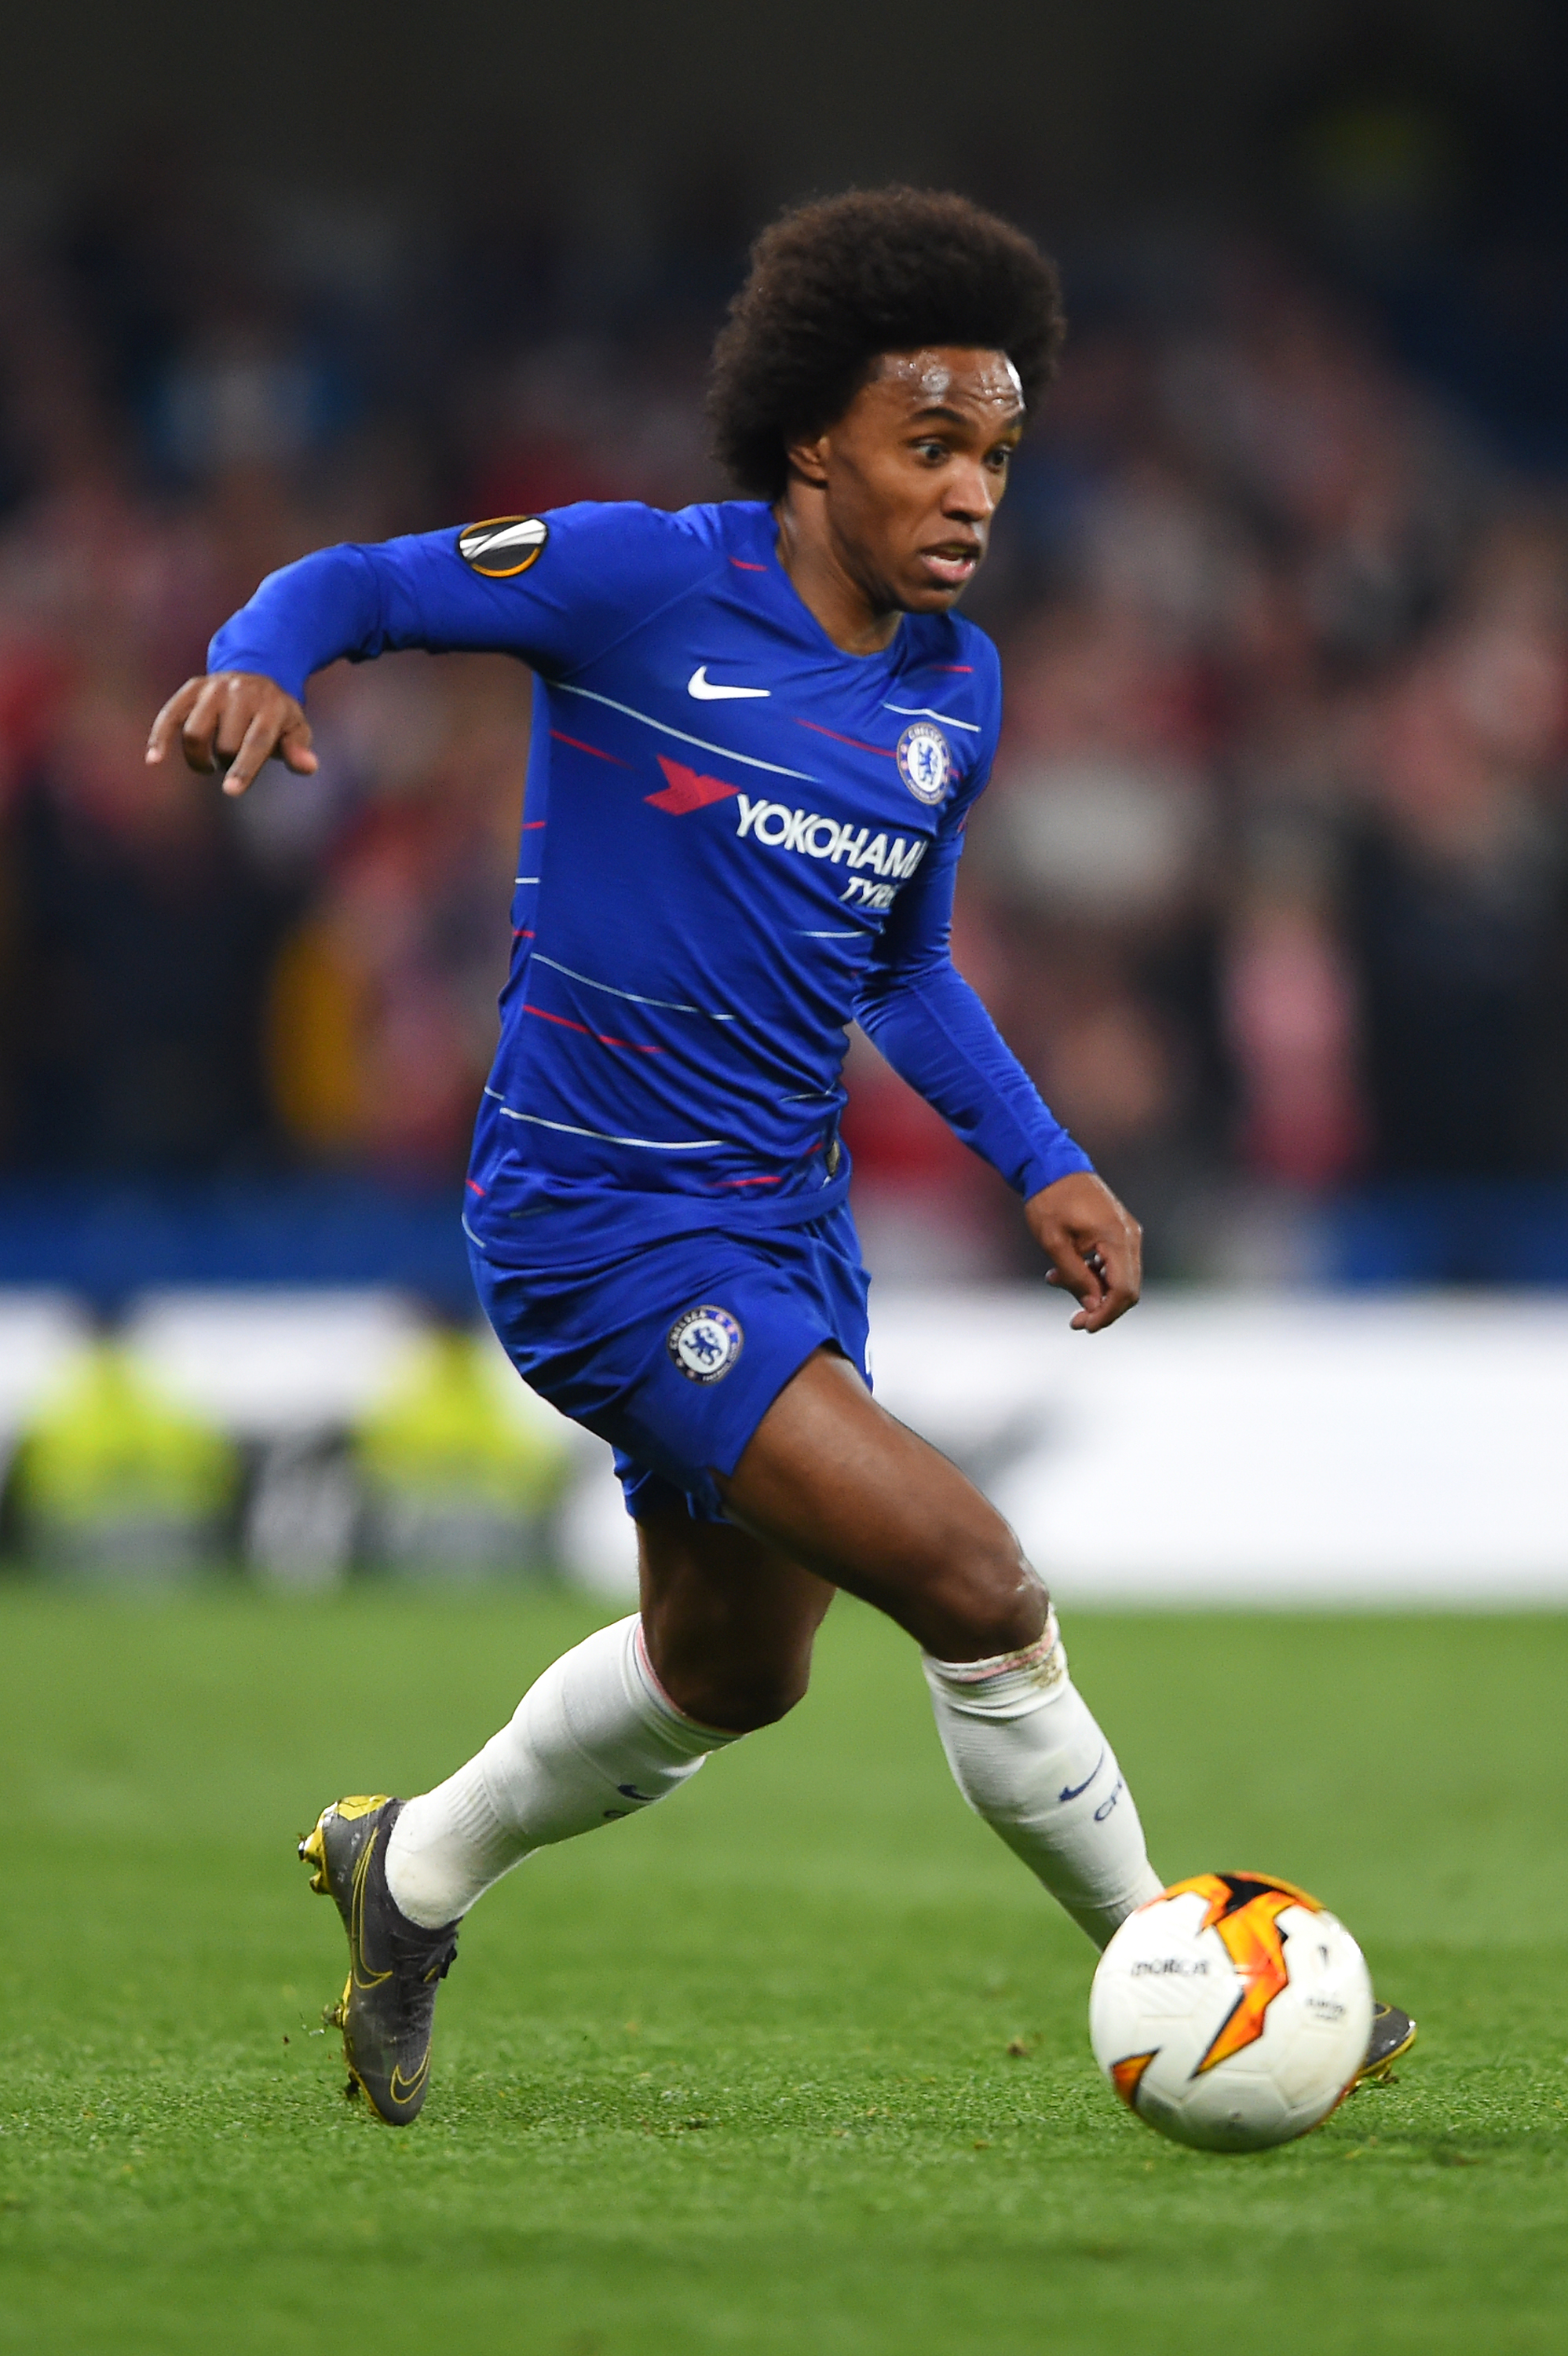 Chelsea reject bids from Atlético Madrid, Barcelona for Willian — report